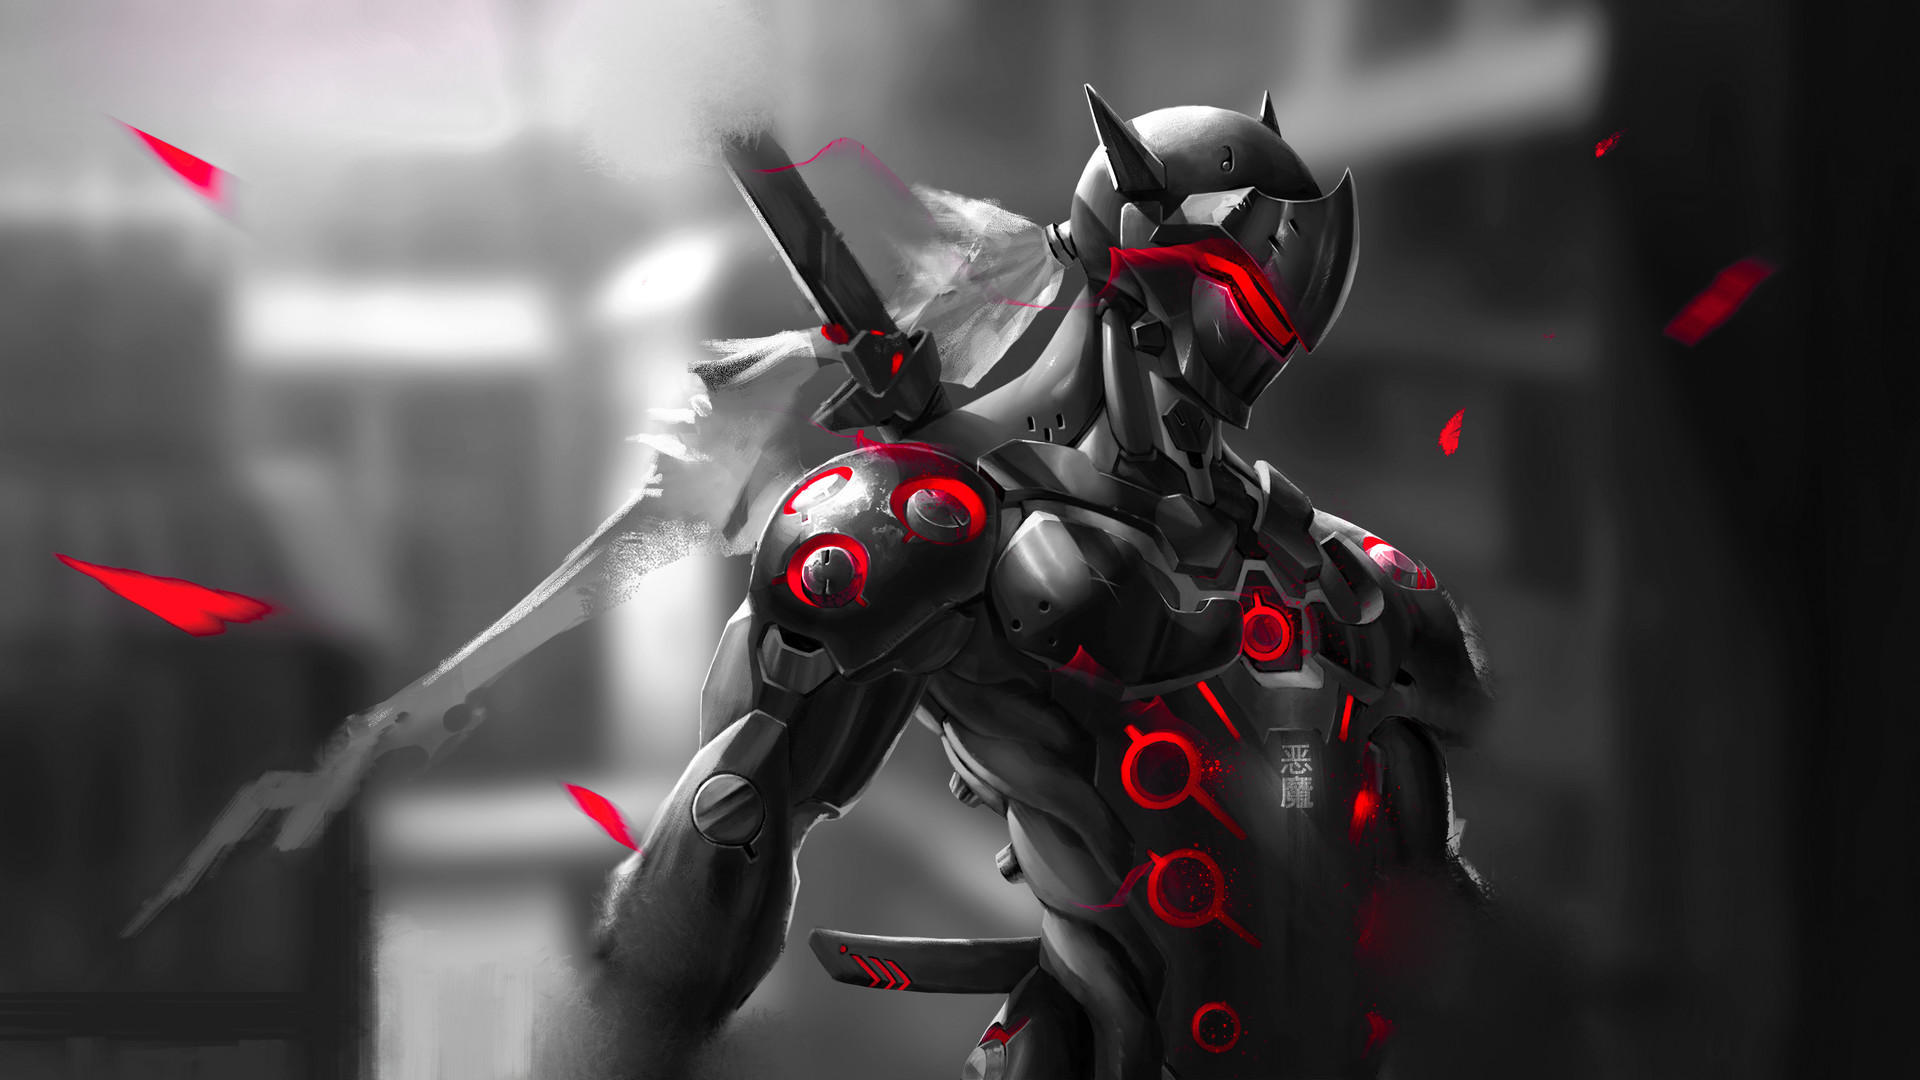 Res: 1920x1080, Red Genji Wallpaper 1080p